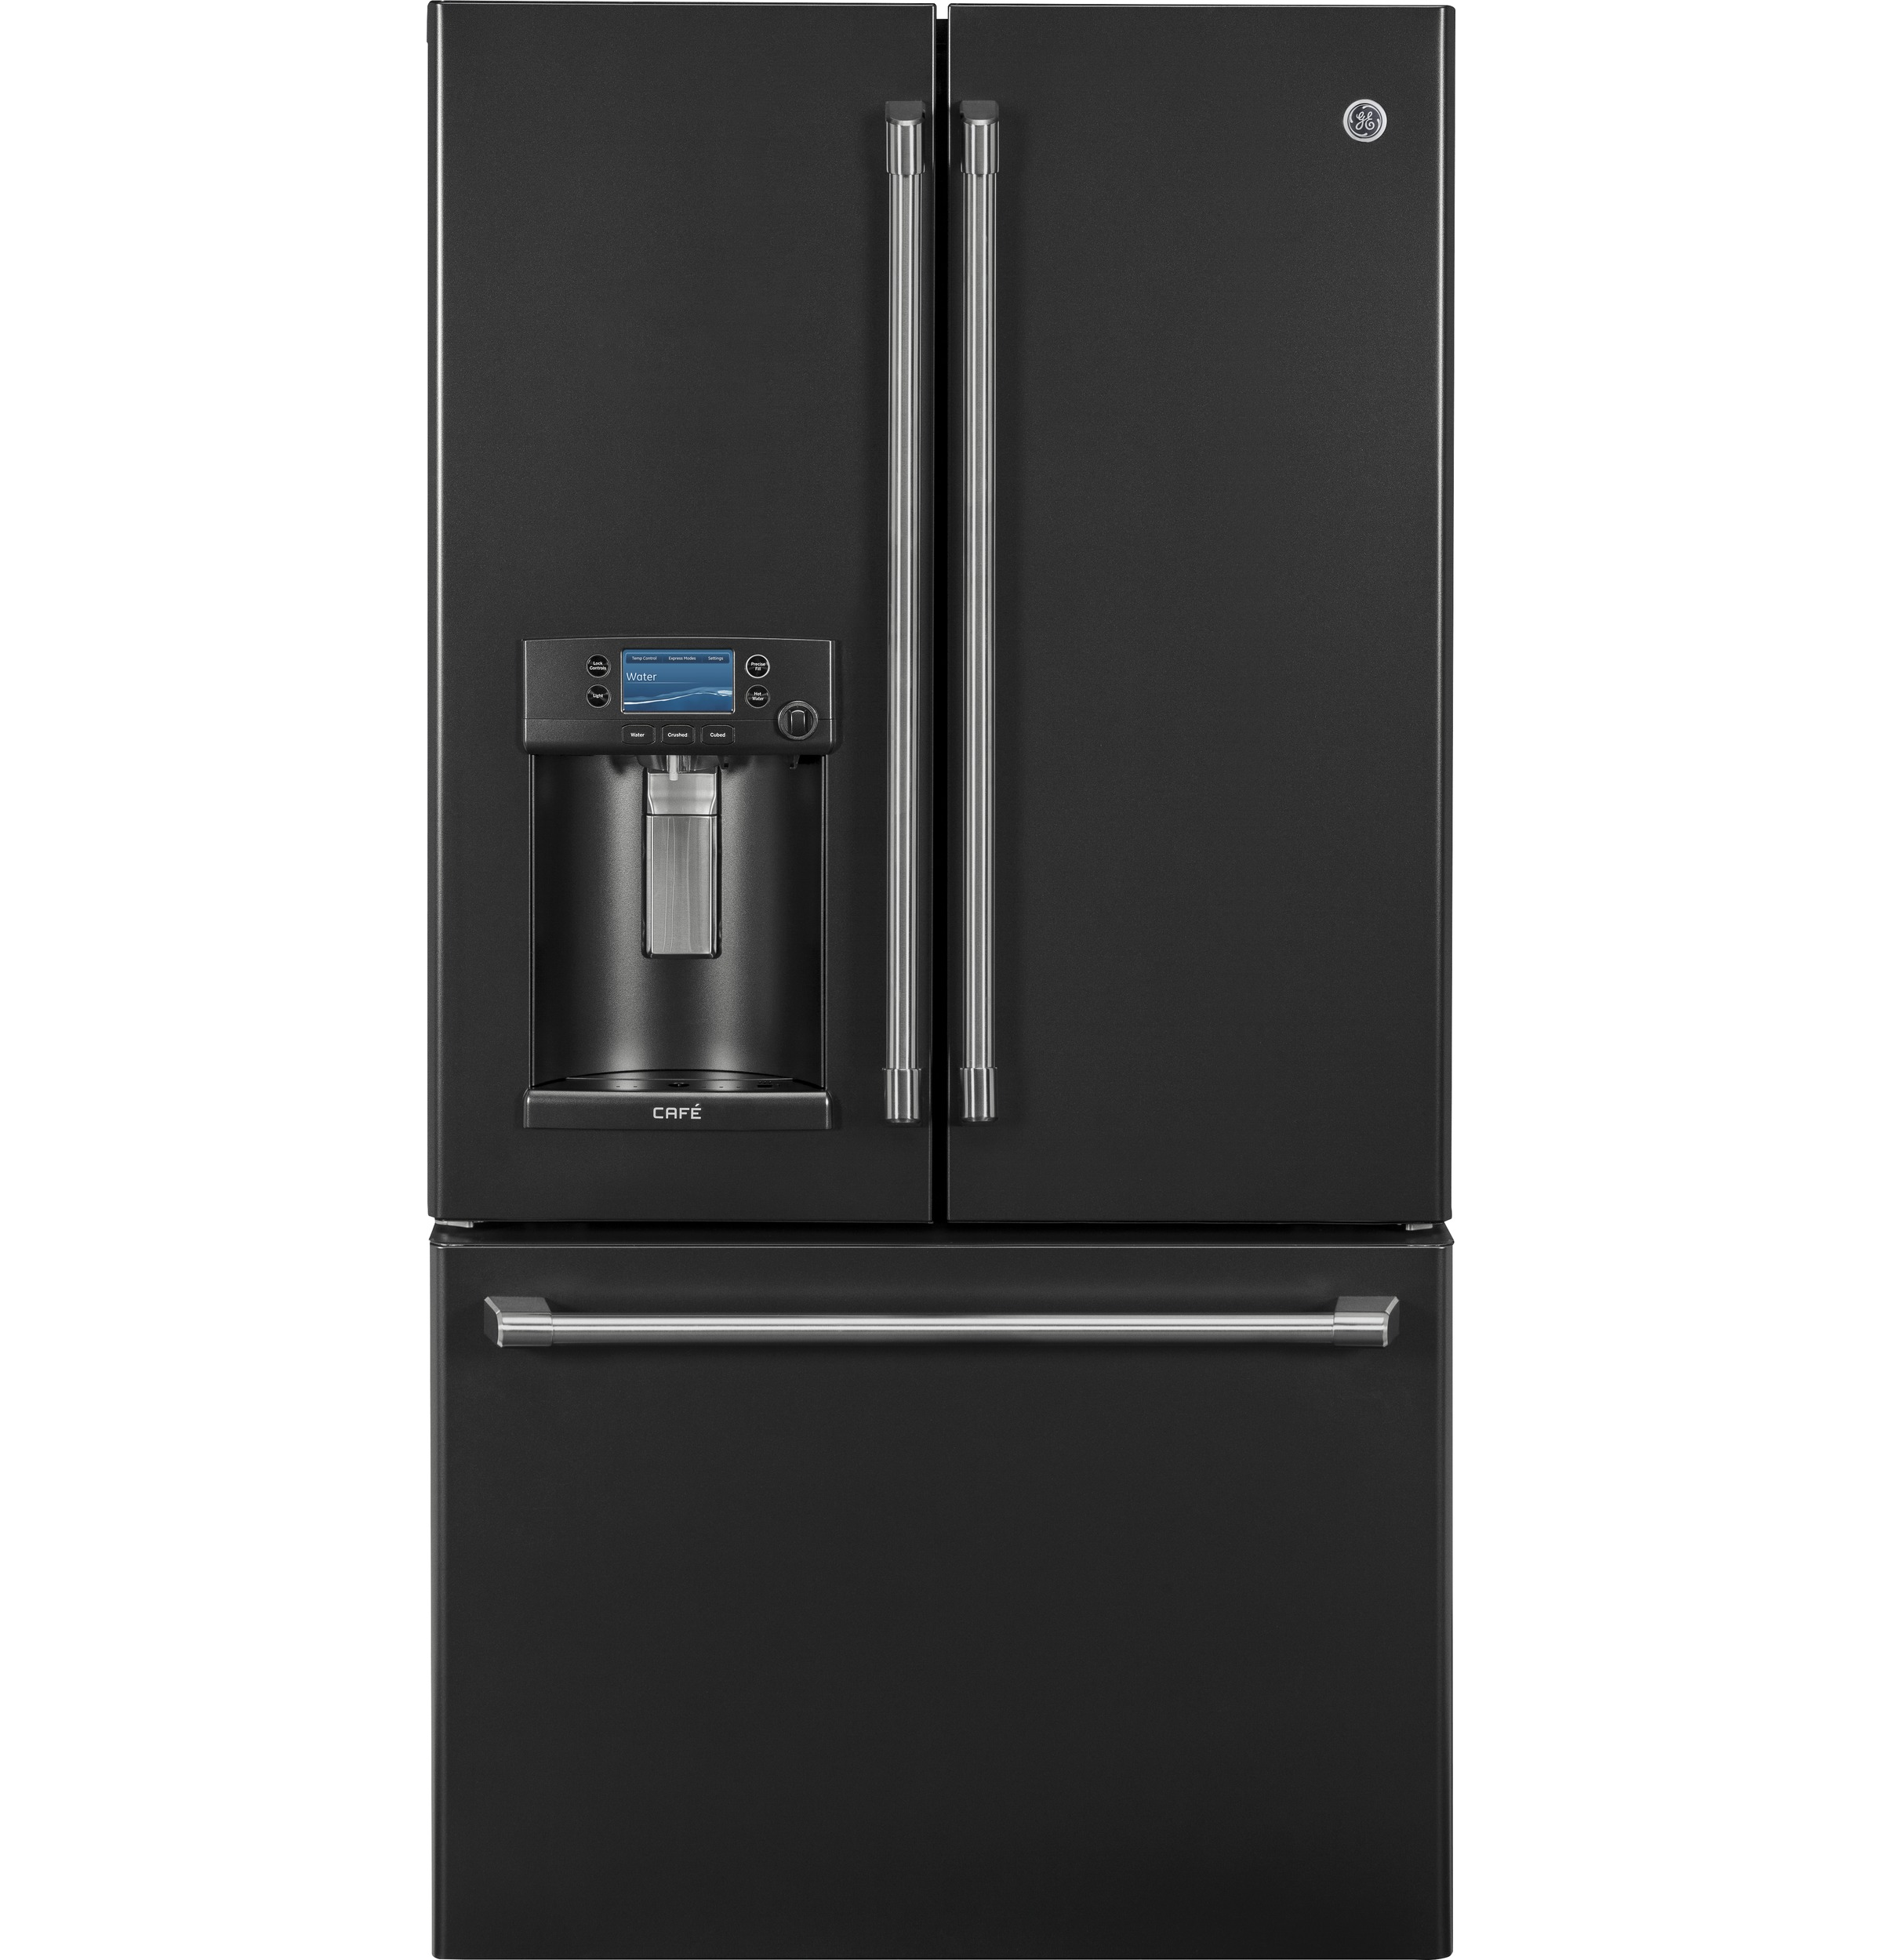 Ge Cafe Series 222 Cu Ft Counter Depth French Door Refrigerator